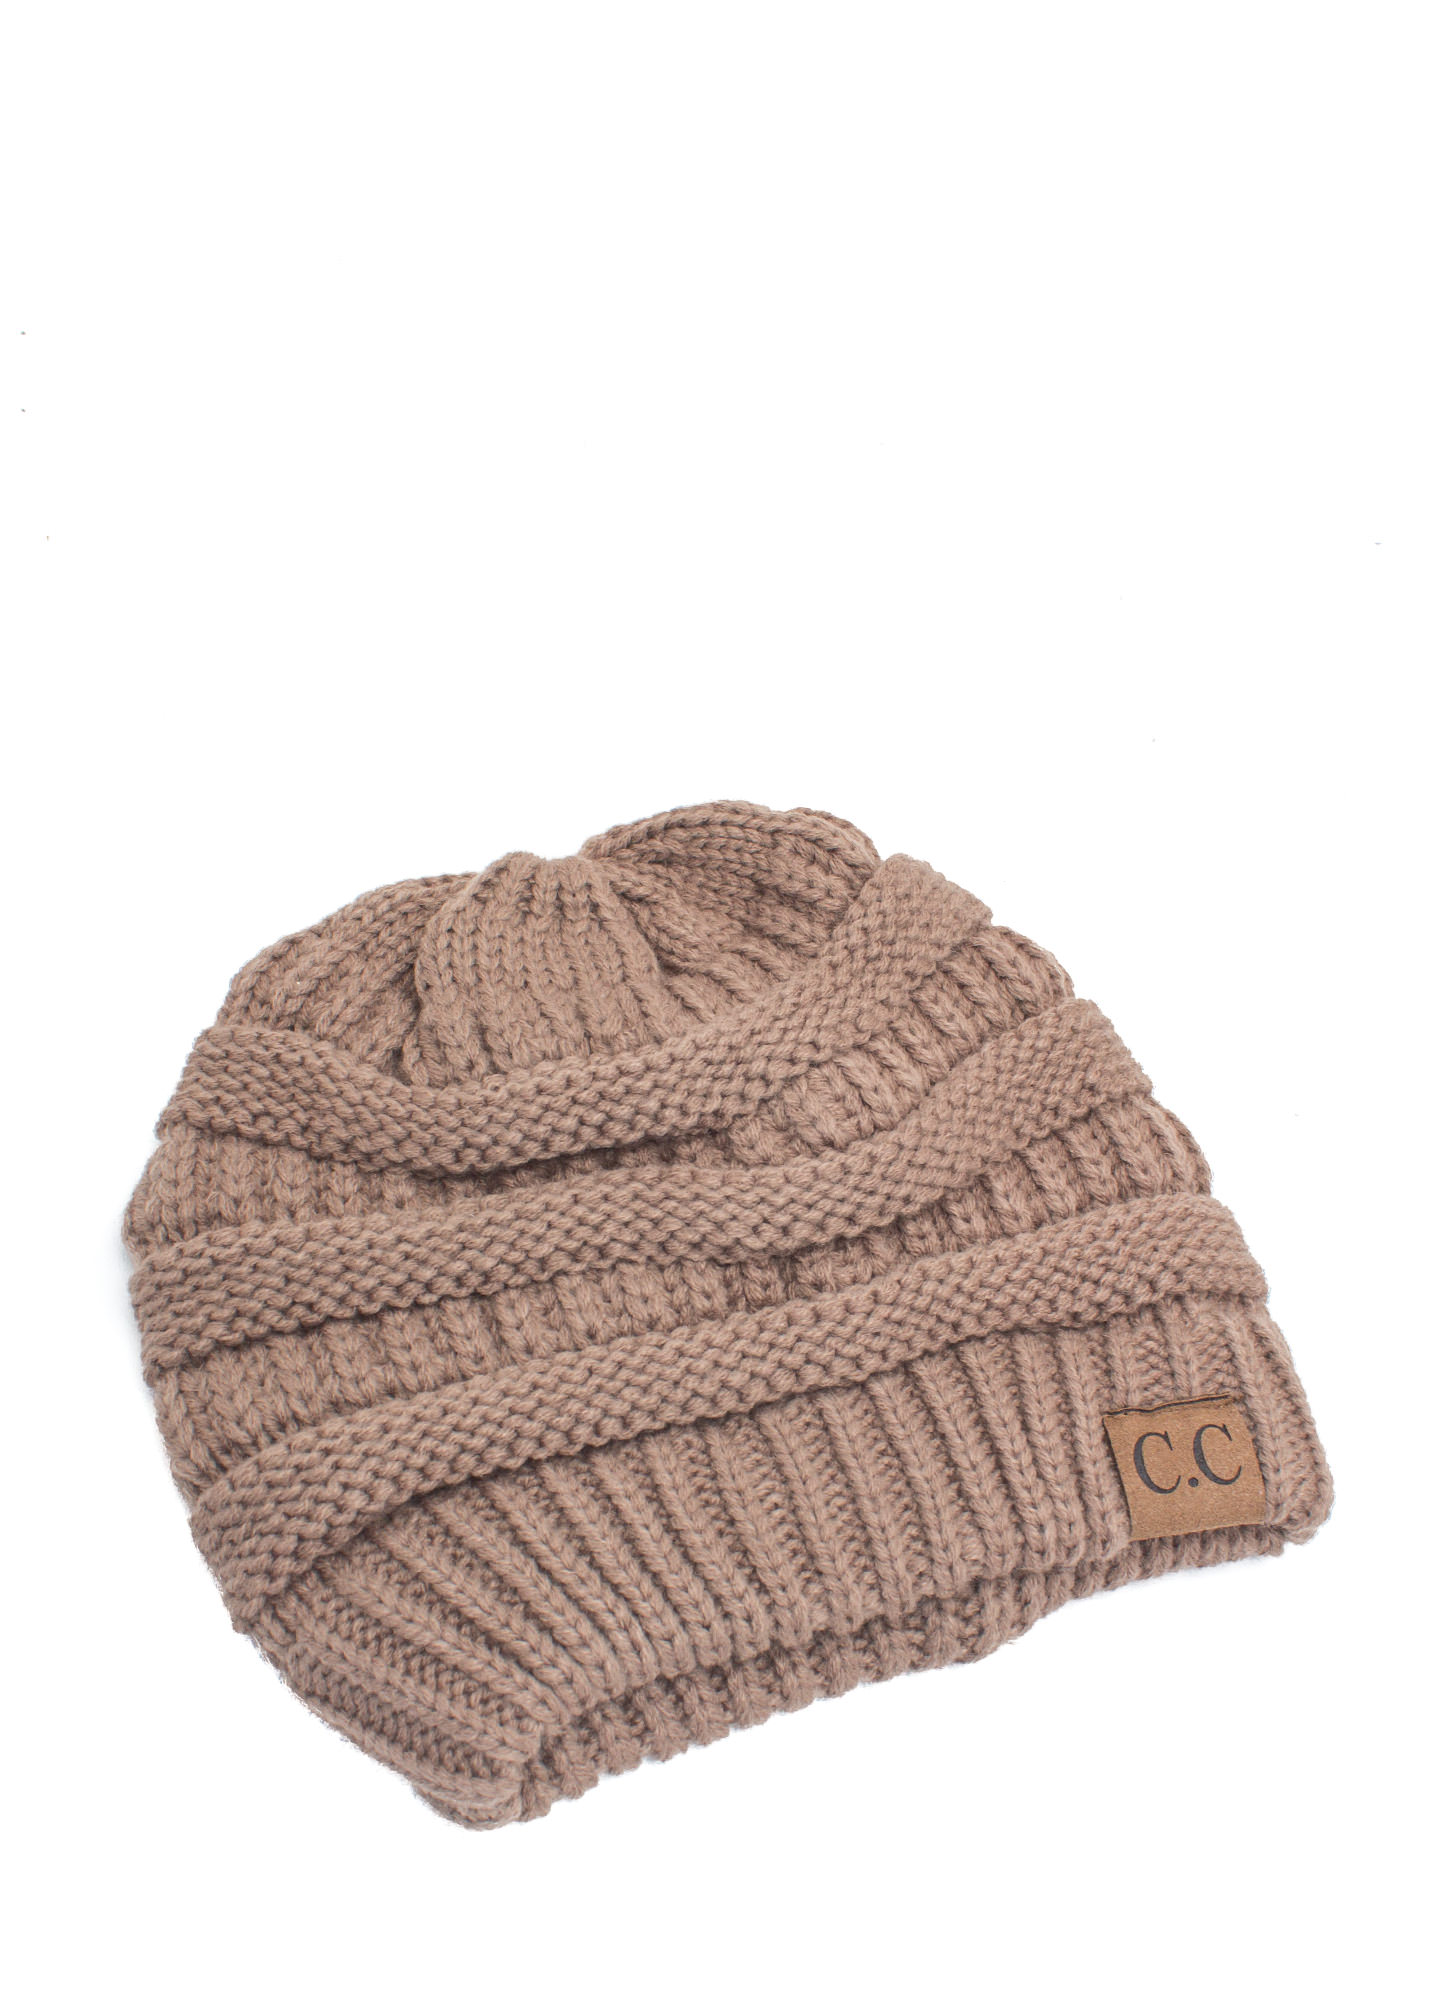 CC Cable Kit Beanie MOCHA